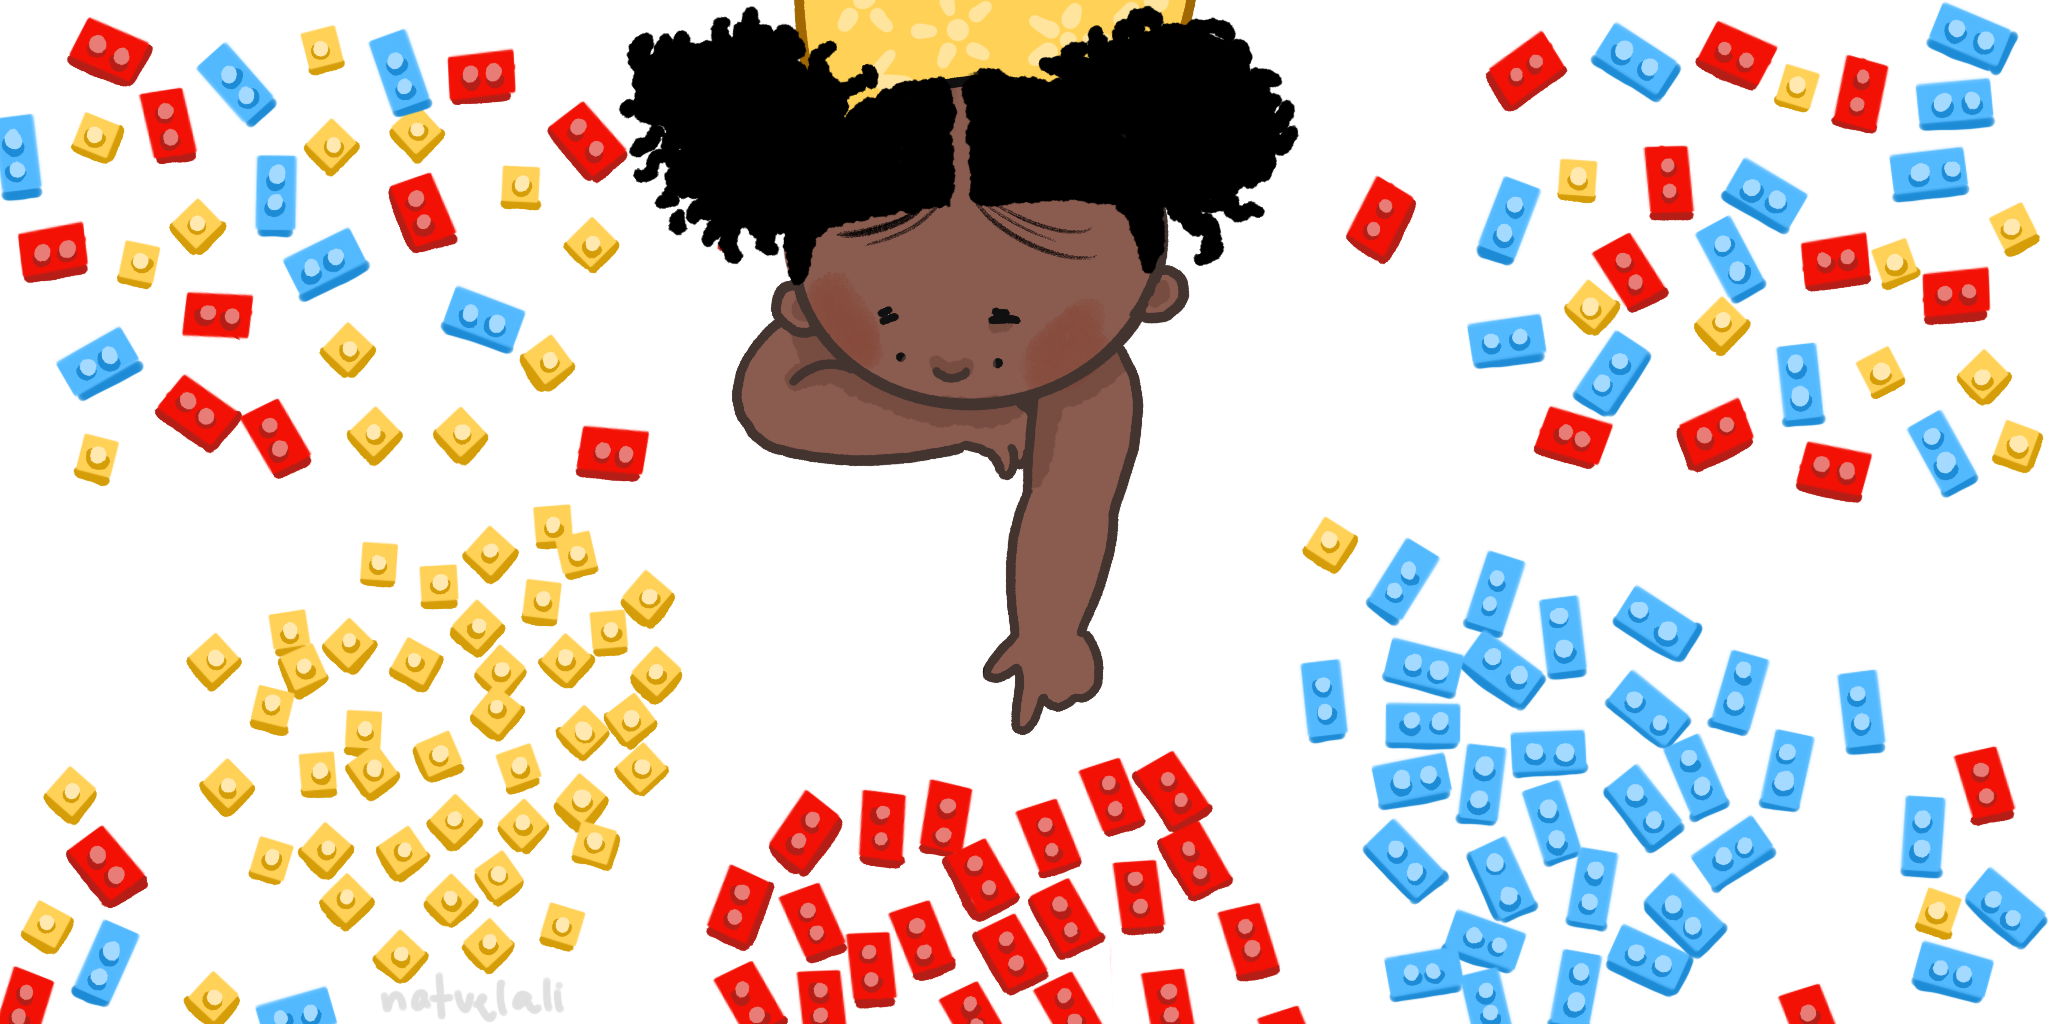 a girl is surrounded by legos, most of which are grouped together by color